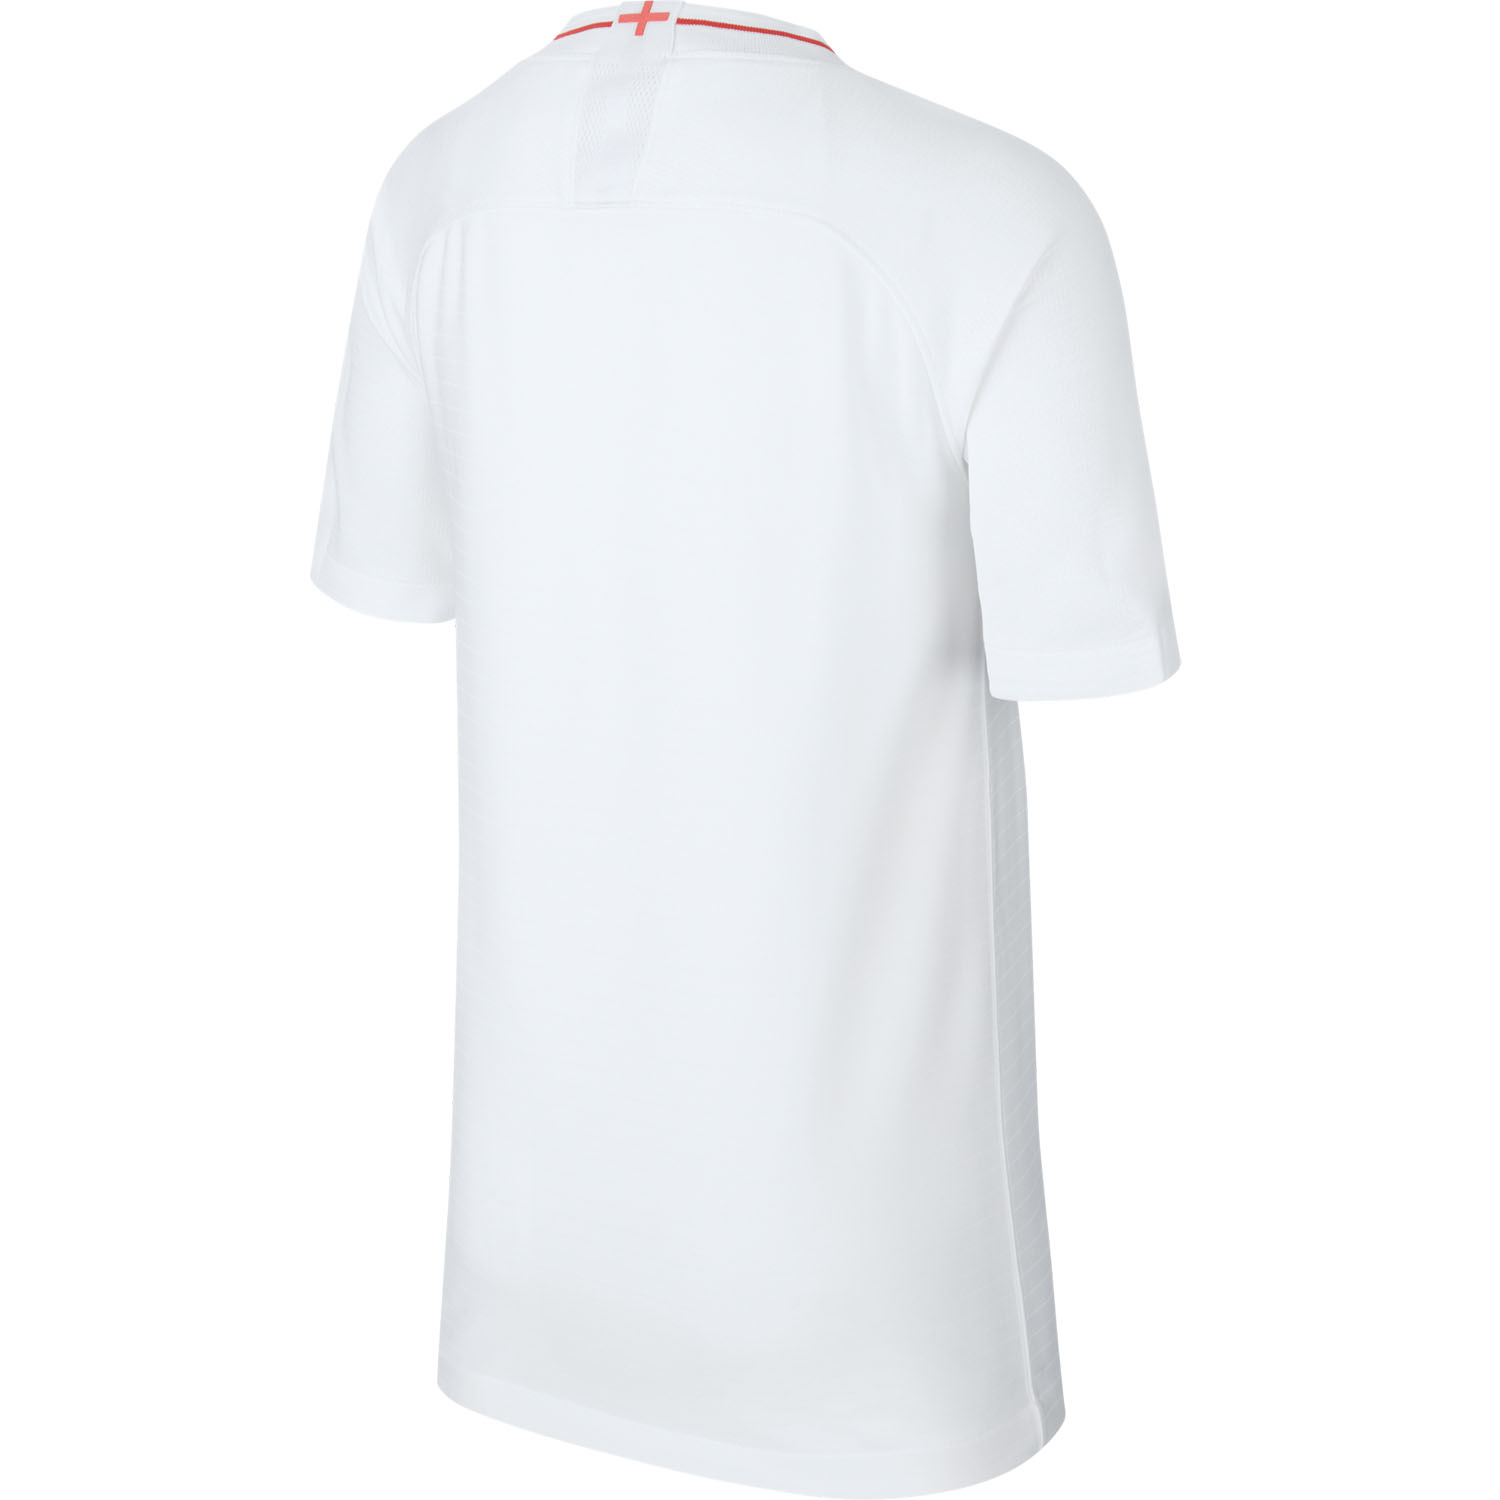 Nike England 2018 World Cup Home Youth Stadium Jersey  81185e8f0